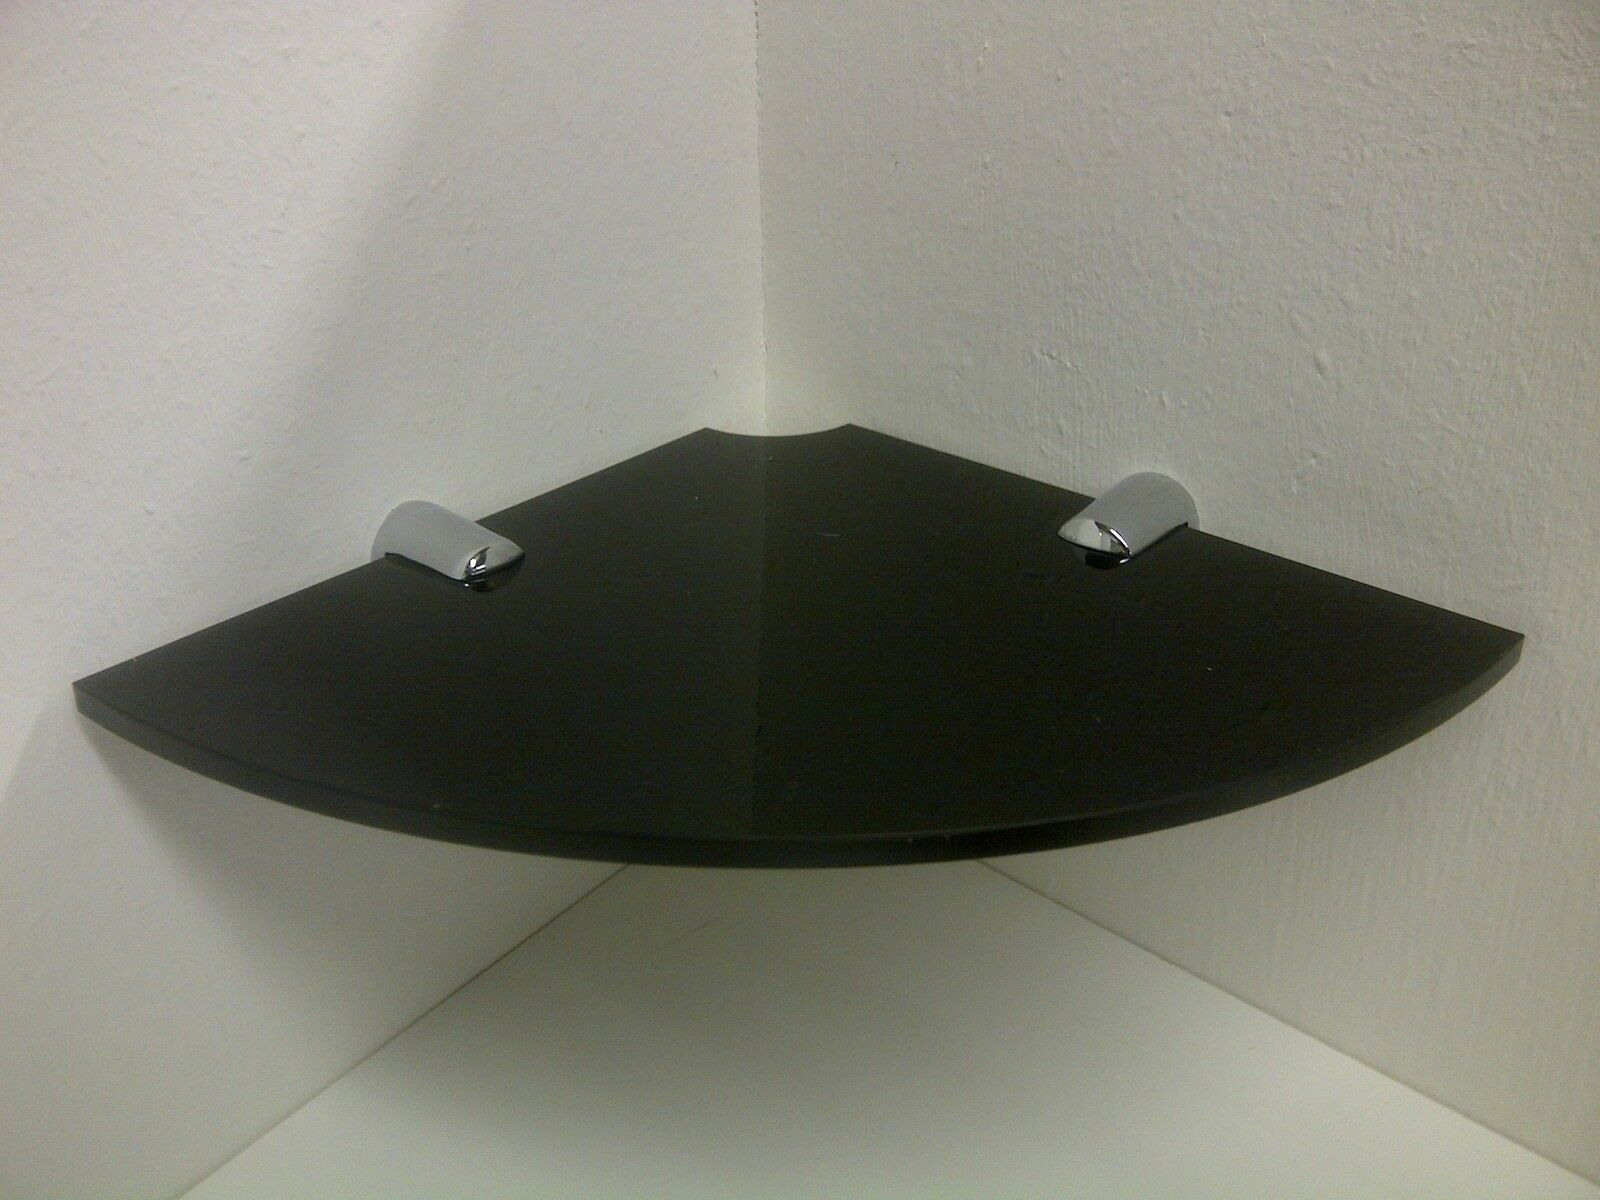 Acrylic Corner Shelf With Cable Way For Small Speaker